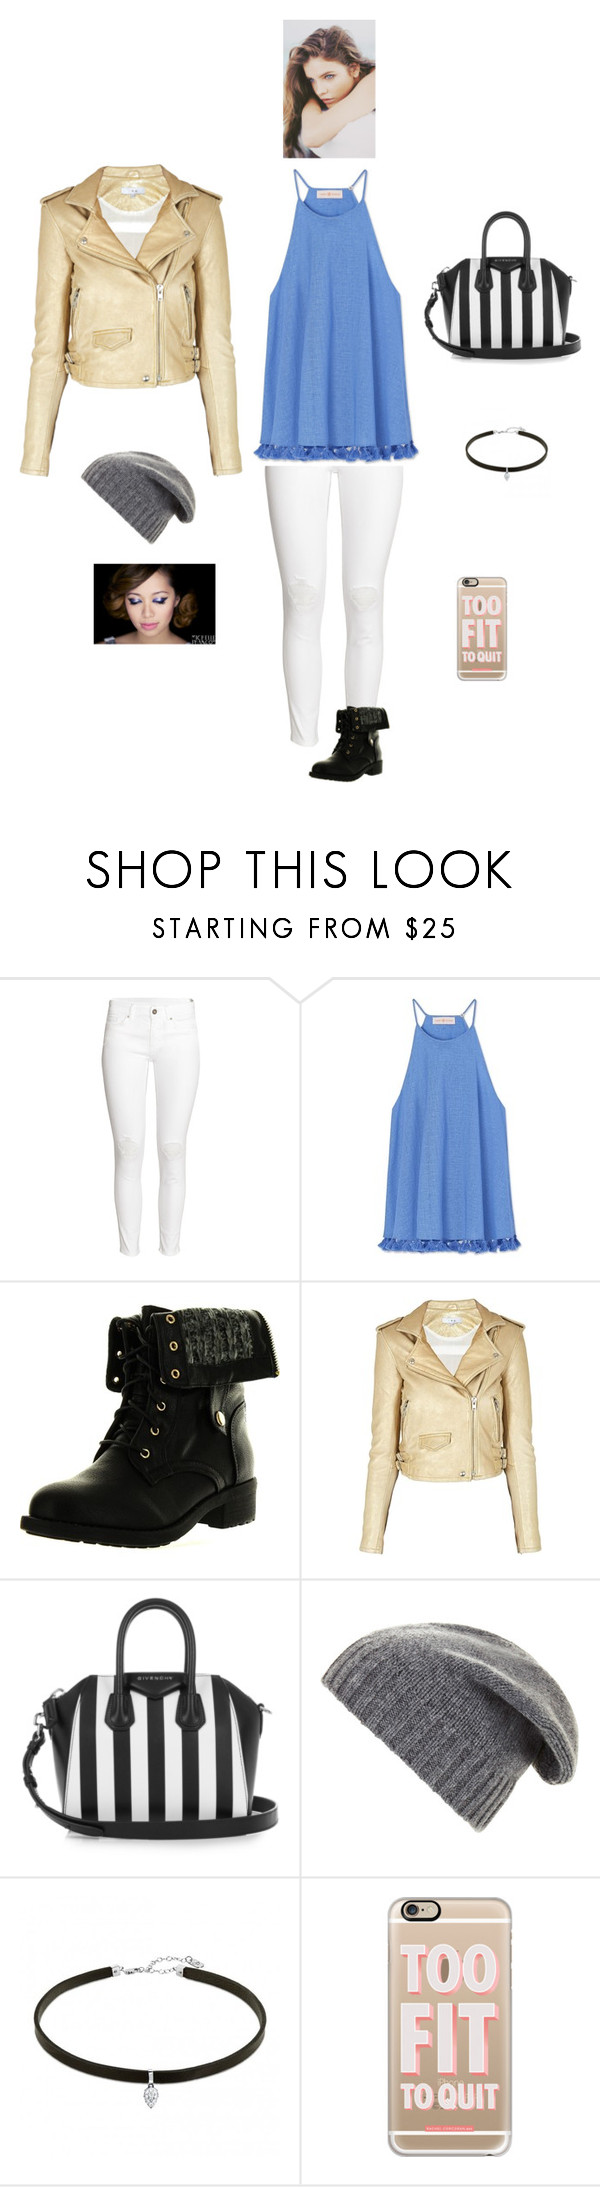 """""""K L S H F Y"""" by queen-kaitlyn ❤ liked on Polyvore featuring H&M, Tory Burch, Refresh, IRO, Givenchy, BCBGMAXAZRIA, Casetify and PATH"""